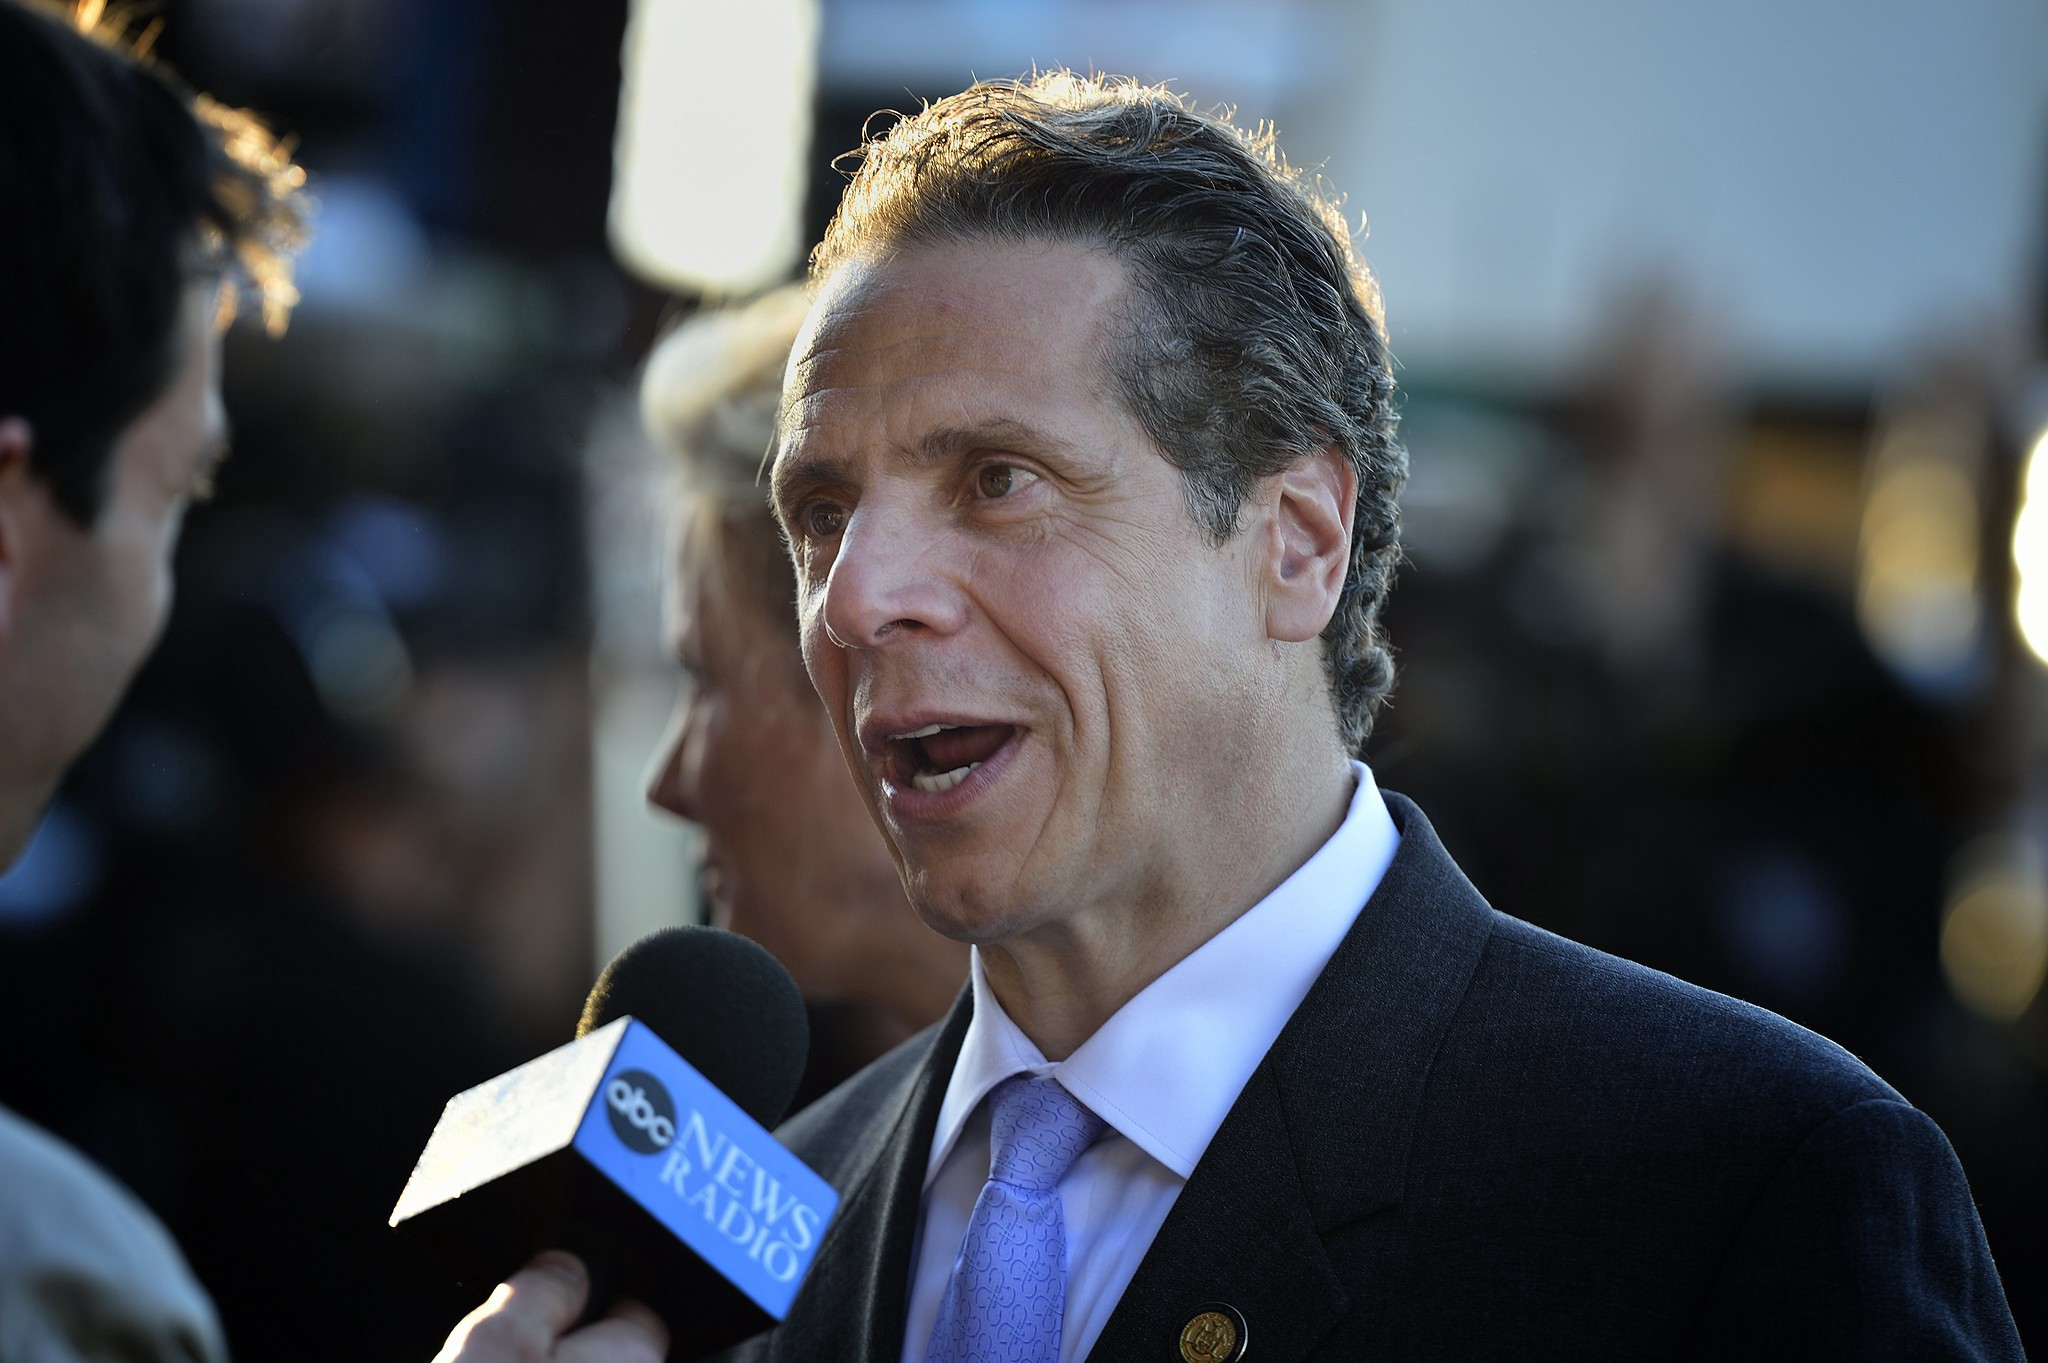 New York Governor Andrew Cuomo being interviewed by a reporter